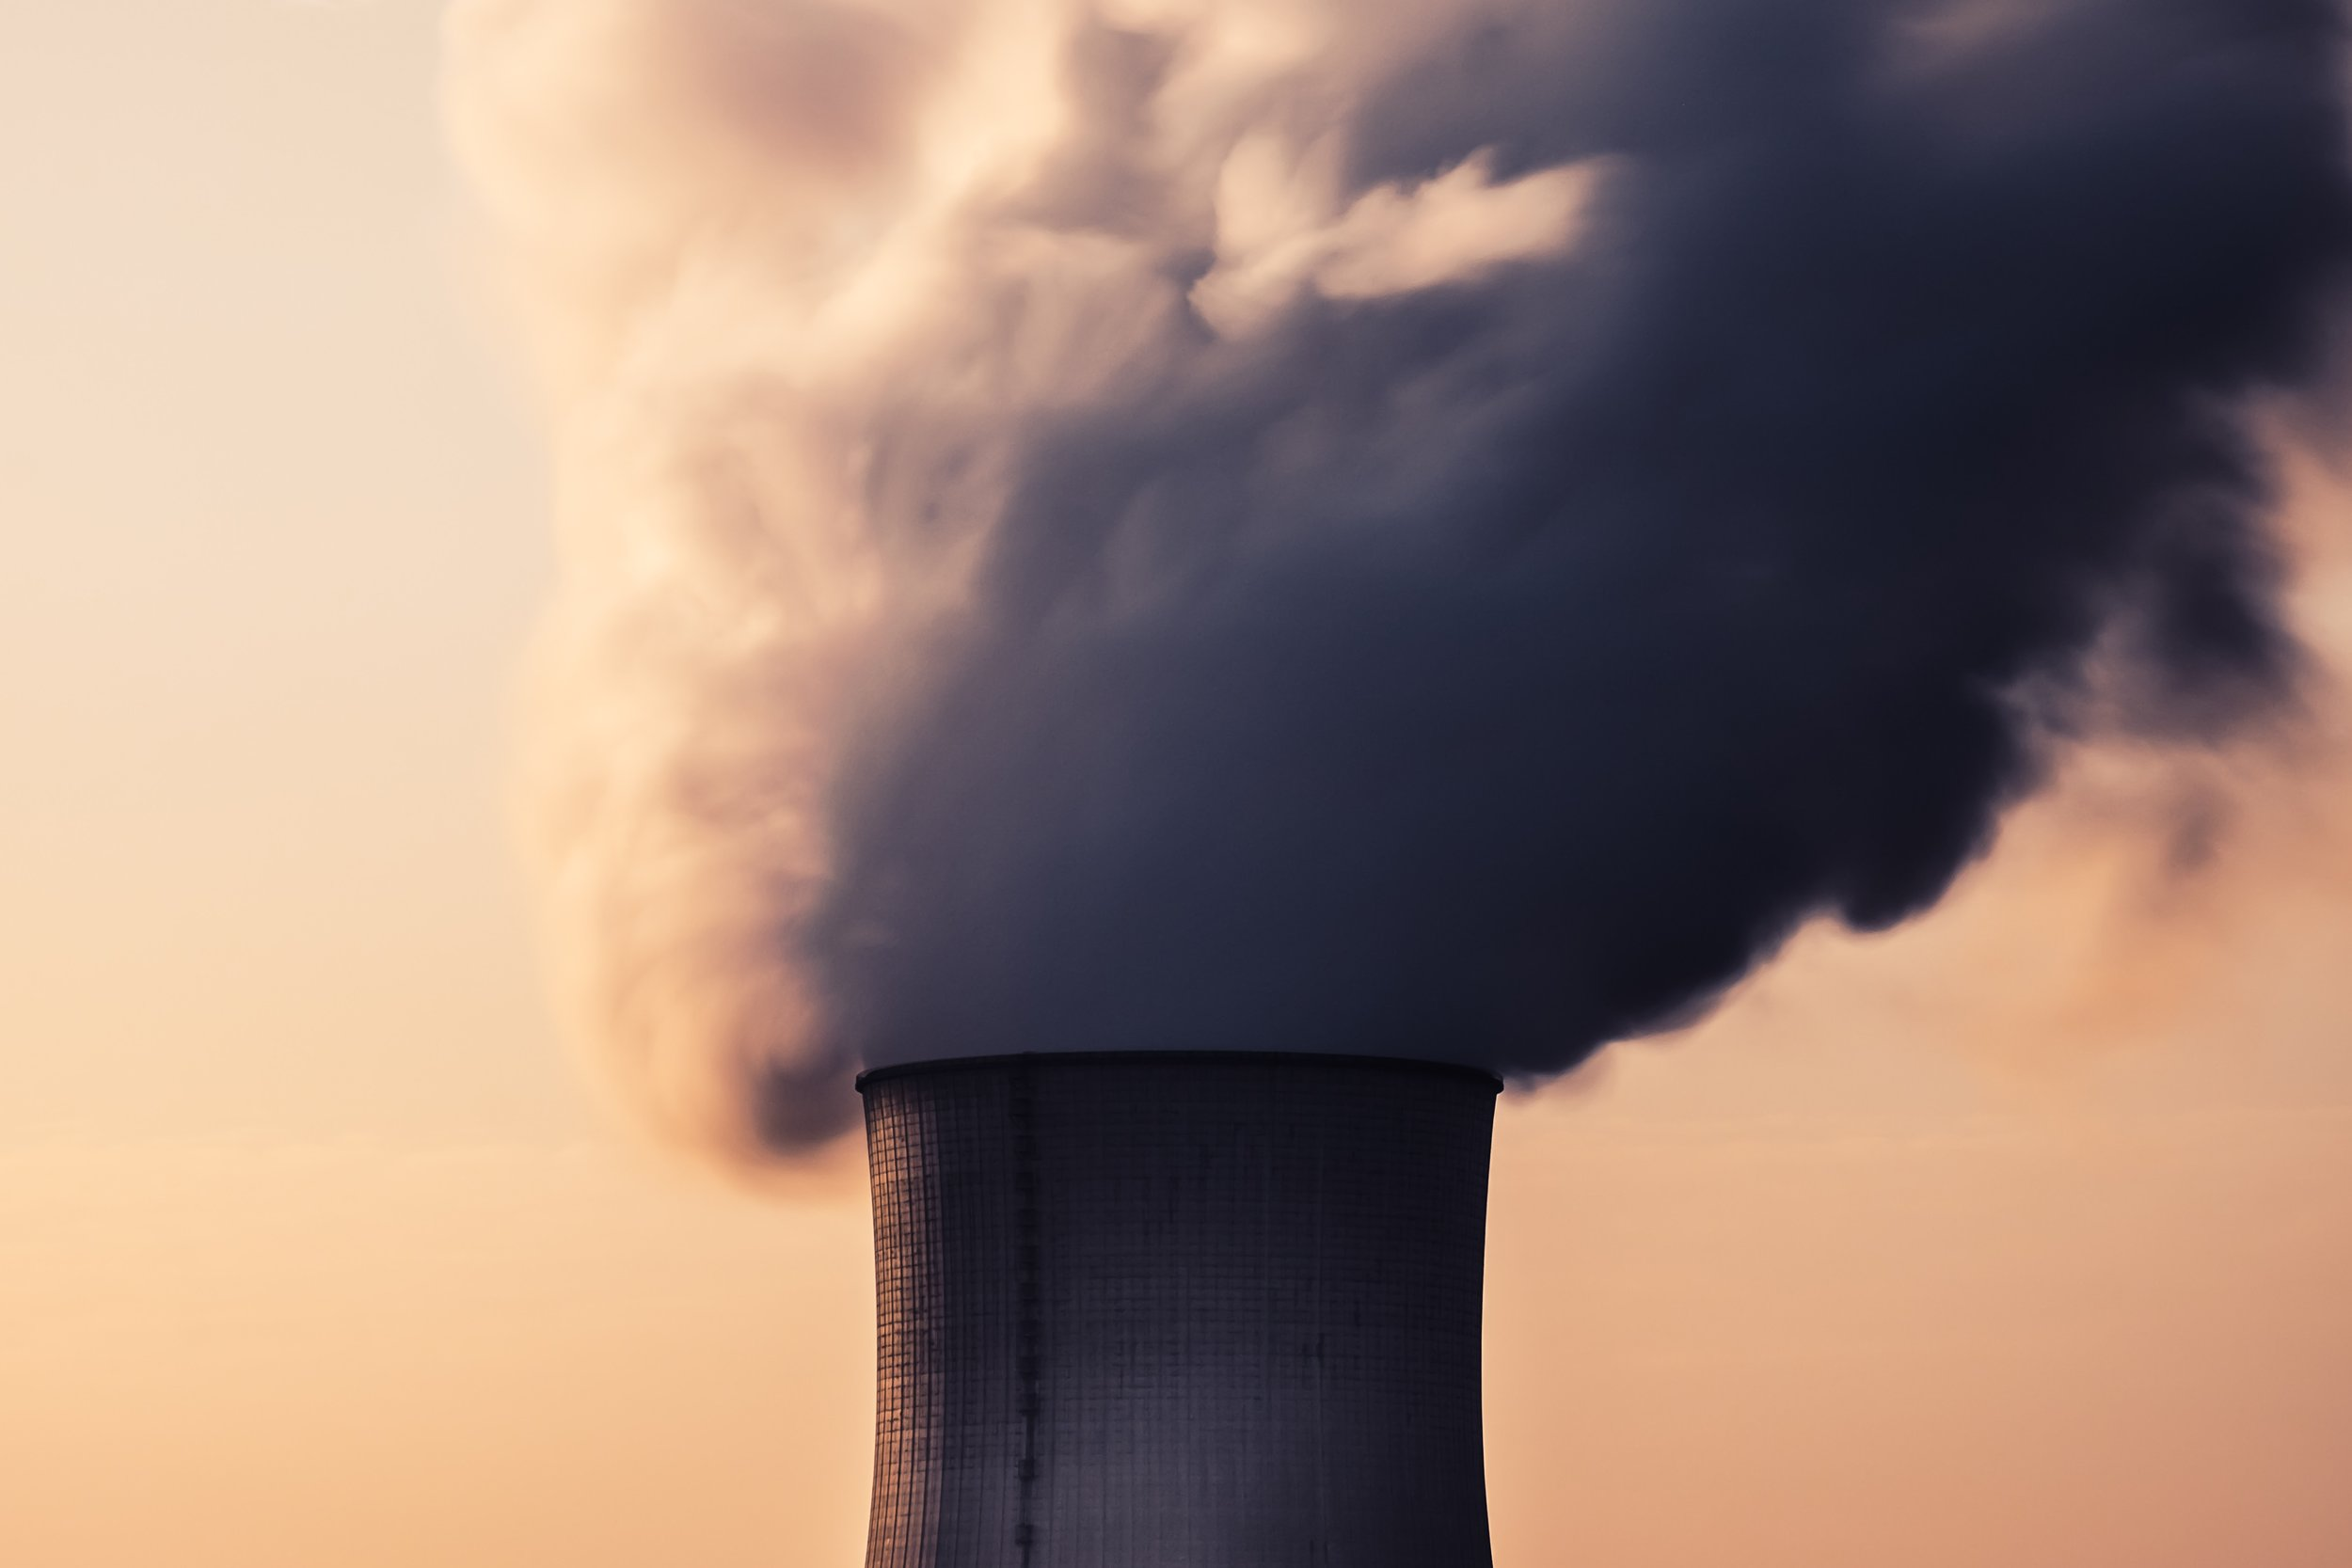 environmental pollution collides with our genes